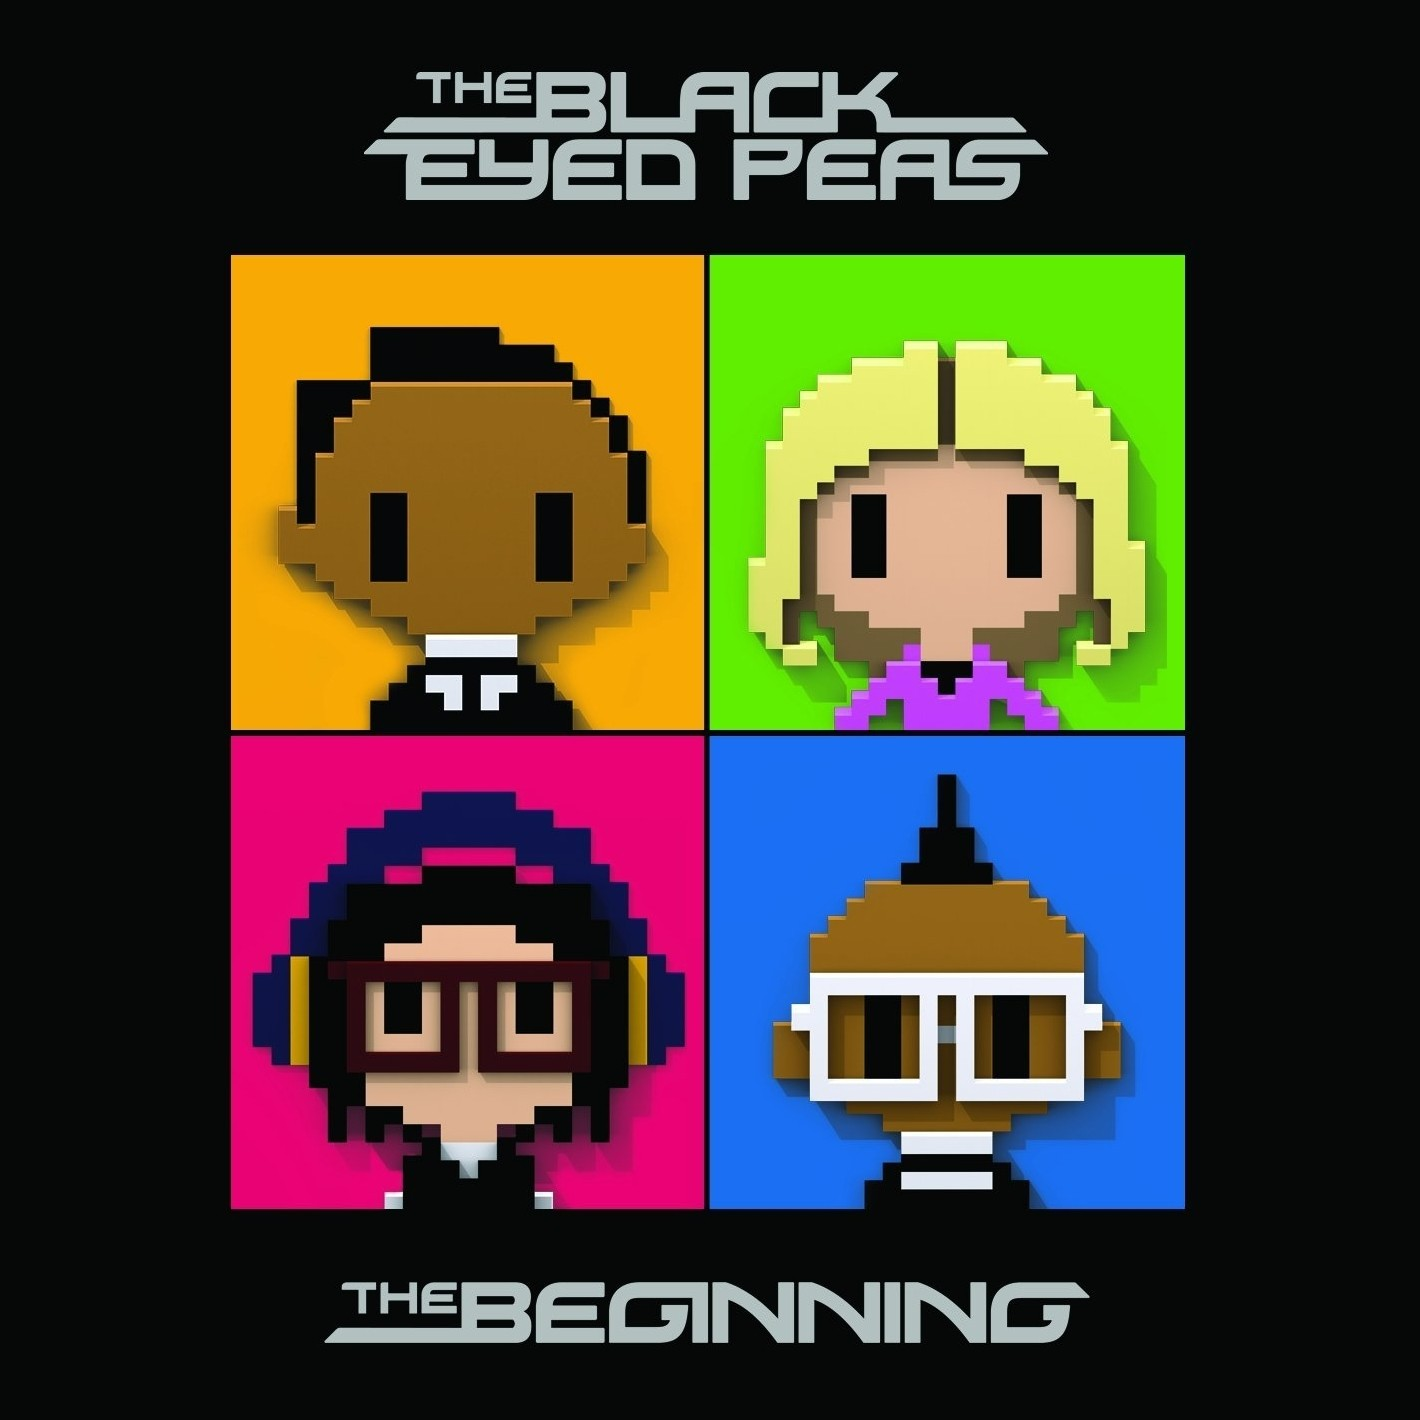 01 - black eyed peas - the time (dirty bit)